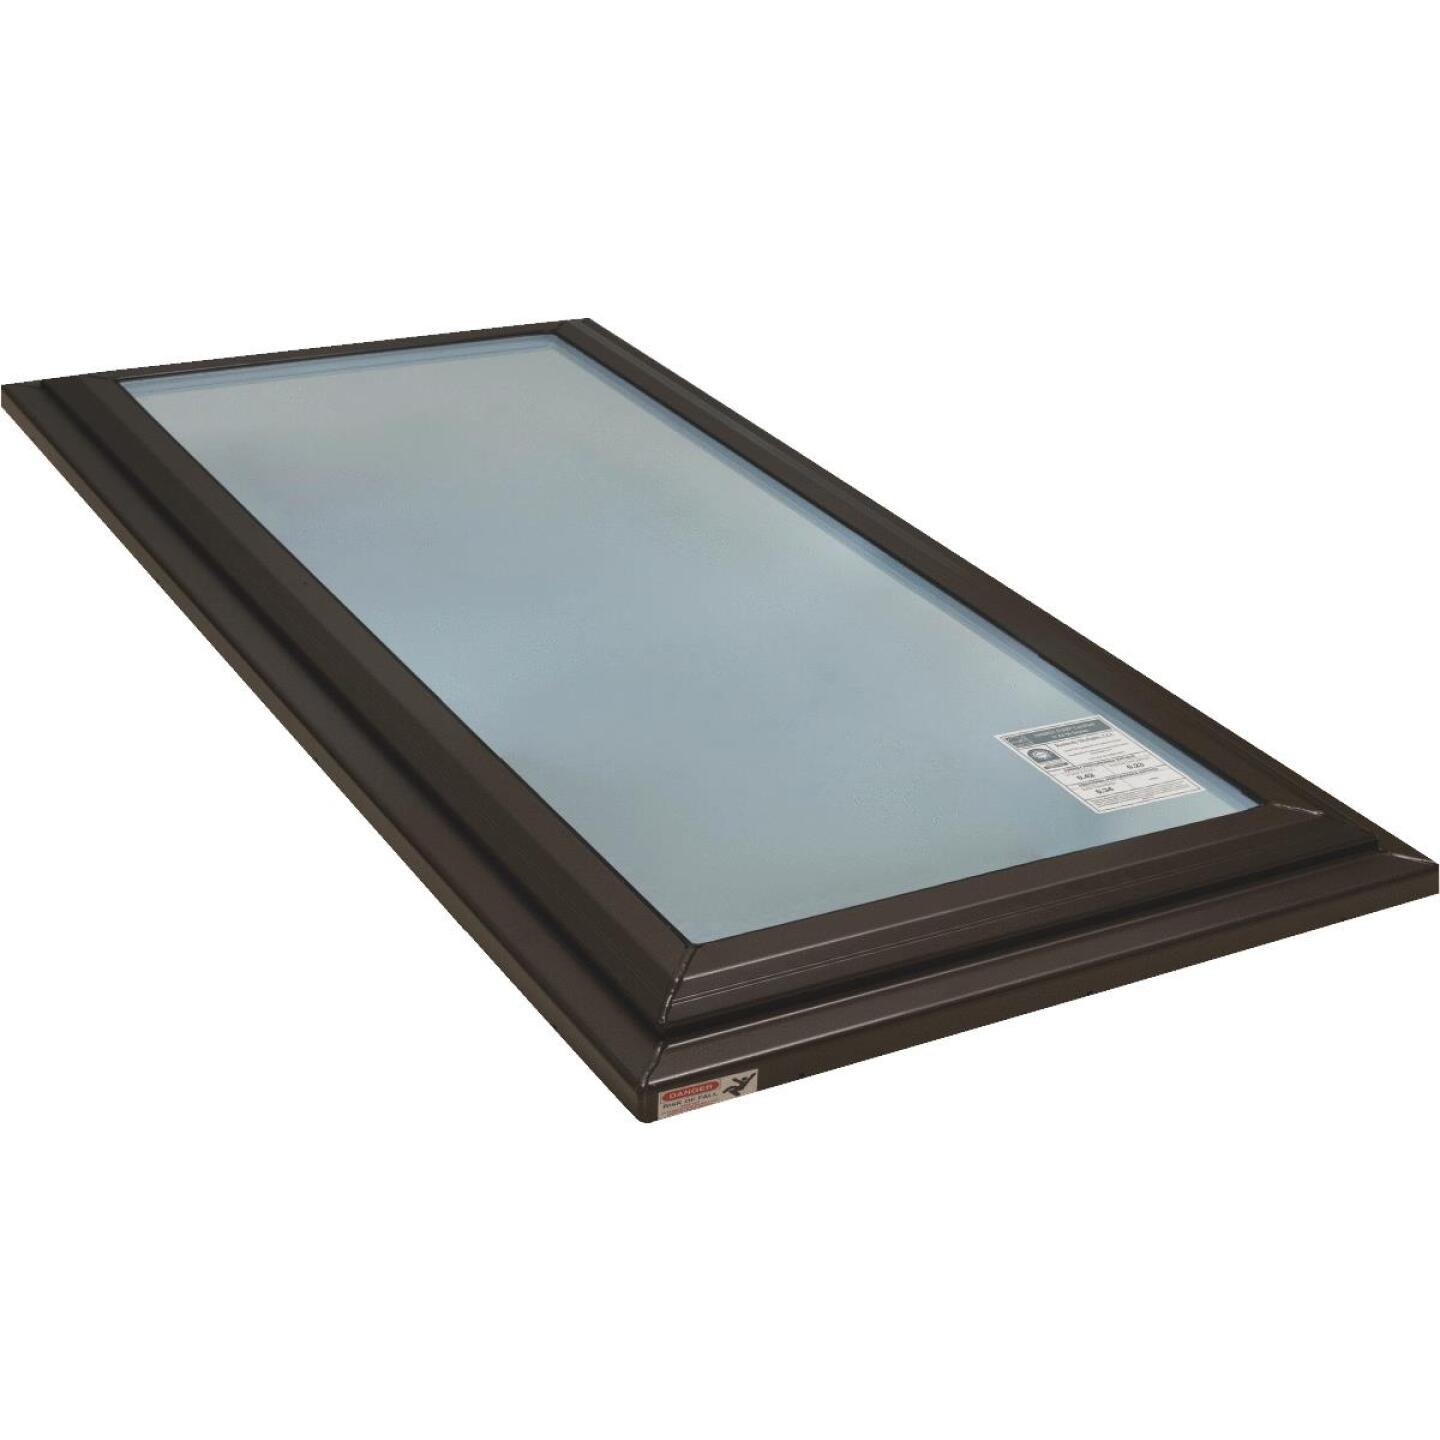 Kennedy Skylights 24 In. x 48 In. Bronze Fixed Glass Skylight Image 1